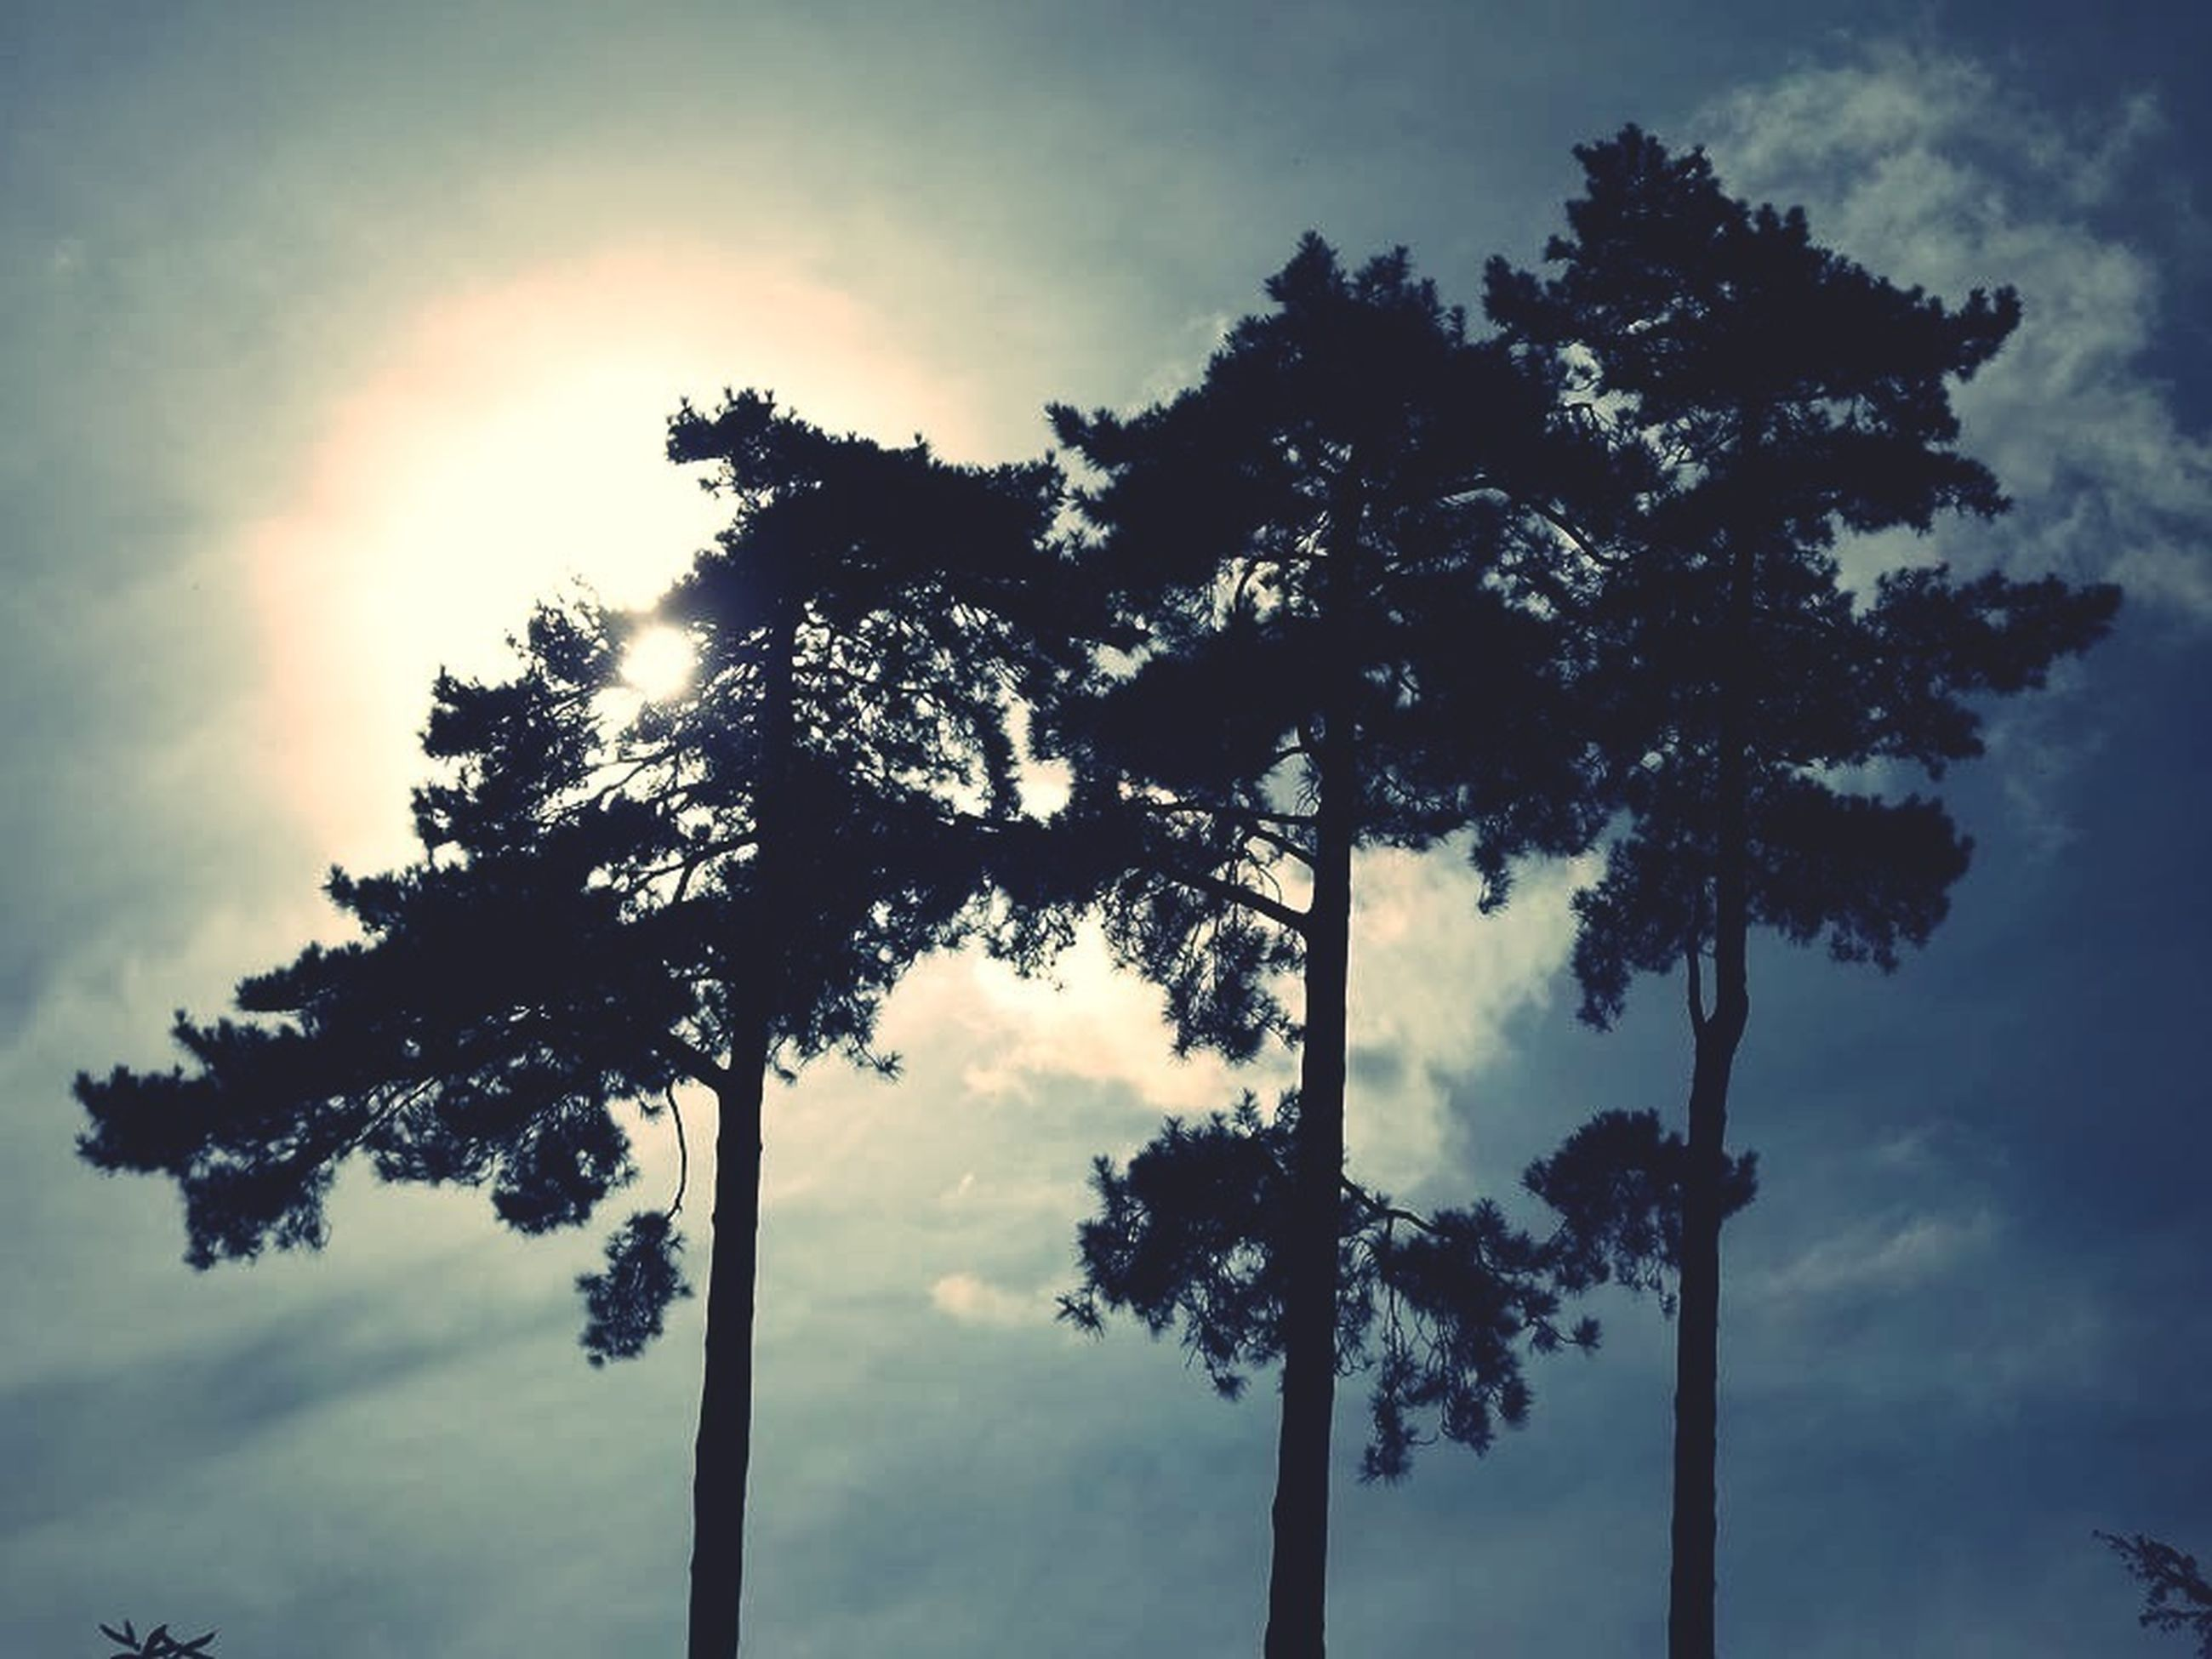 tree, low angle view, sky, cloud - sky, silhouette, tranquility, cloudy, nature, growth, cloud, beauty in nature, branch, sunlight, sun, tranquil scene, scenics, no people, outdoors, tree trunk, day